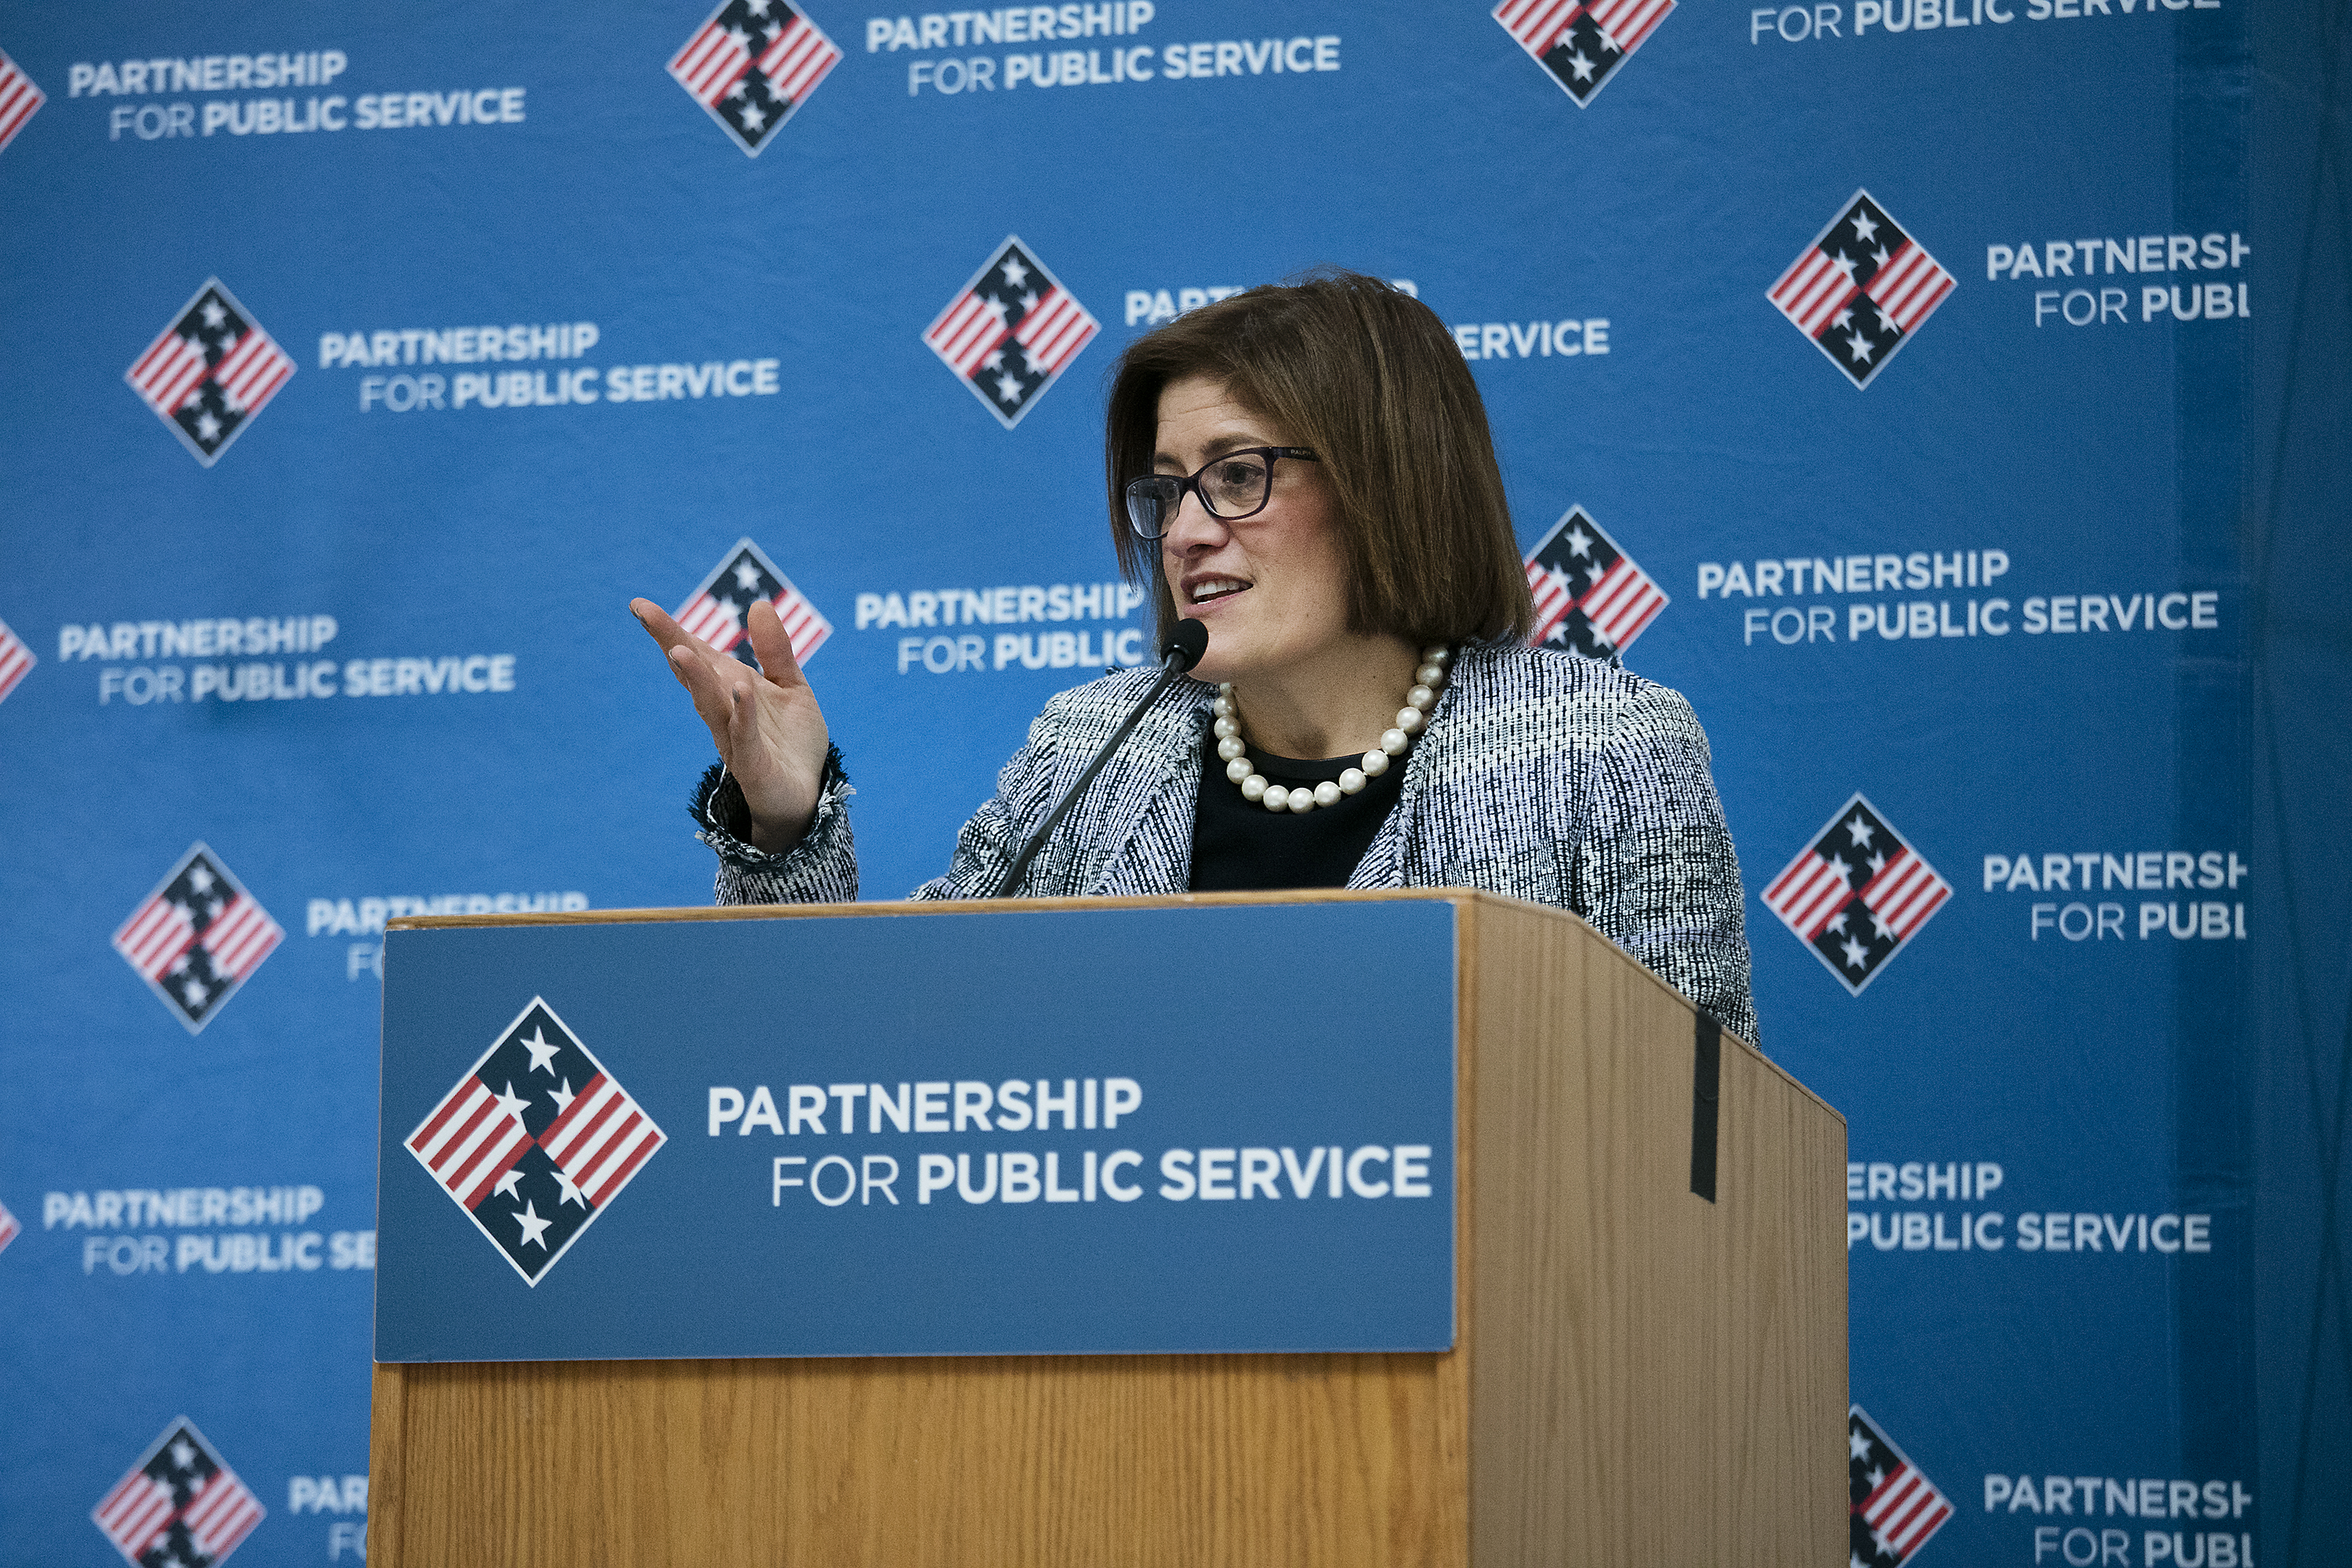 Photo of Acting Director Cobert addressing agencies at a Partnership for Public Service celebration.